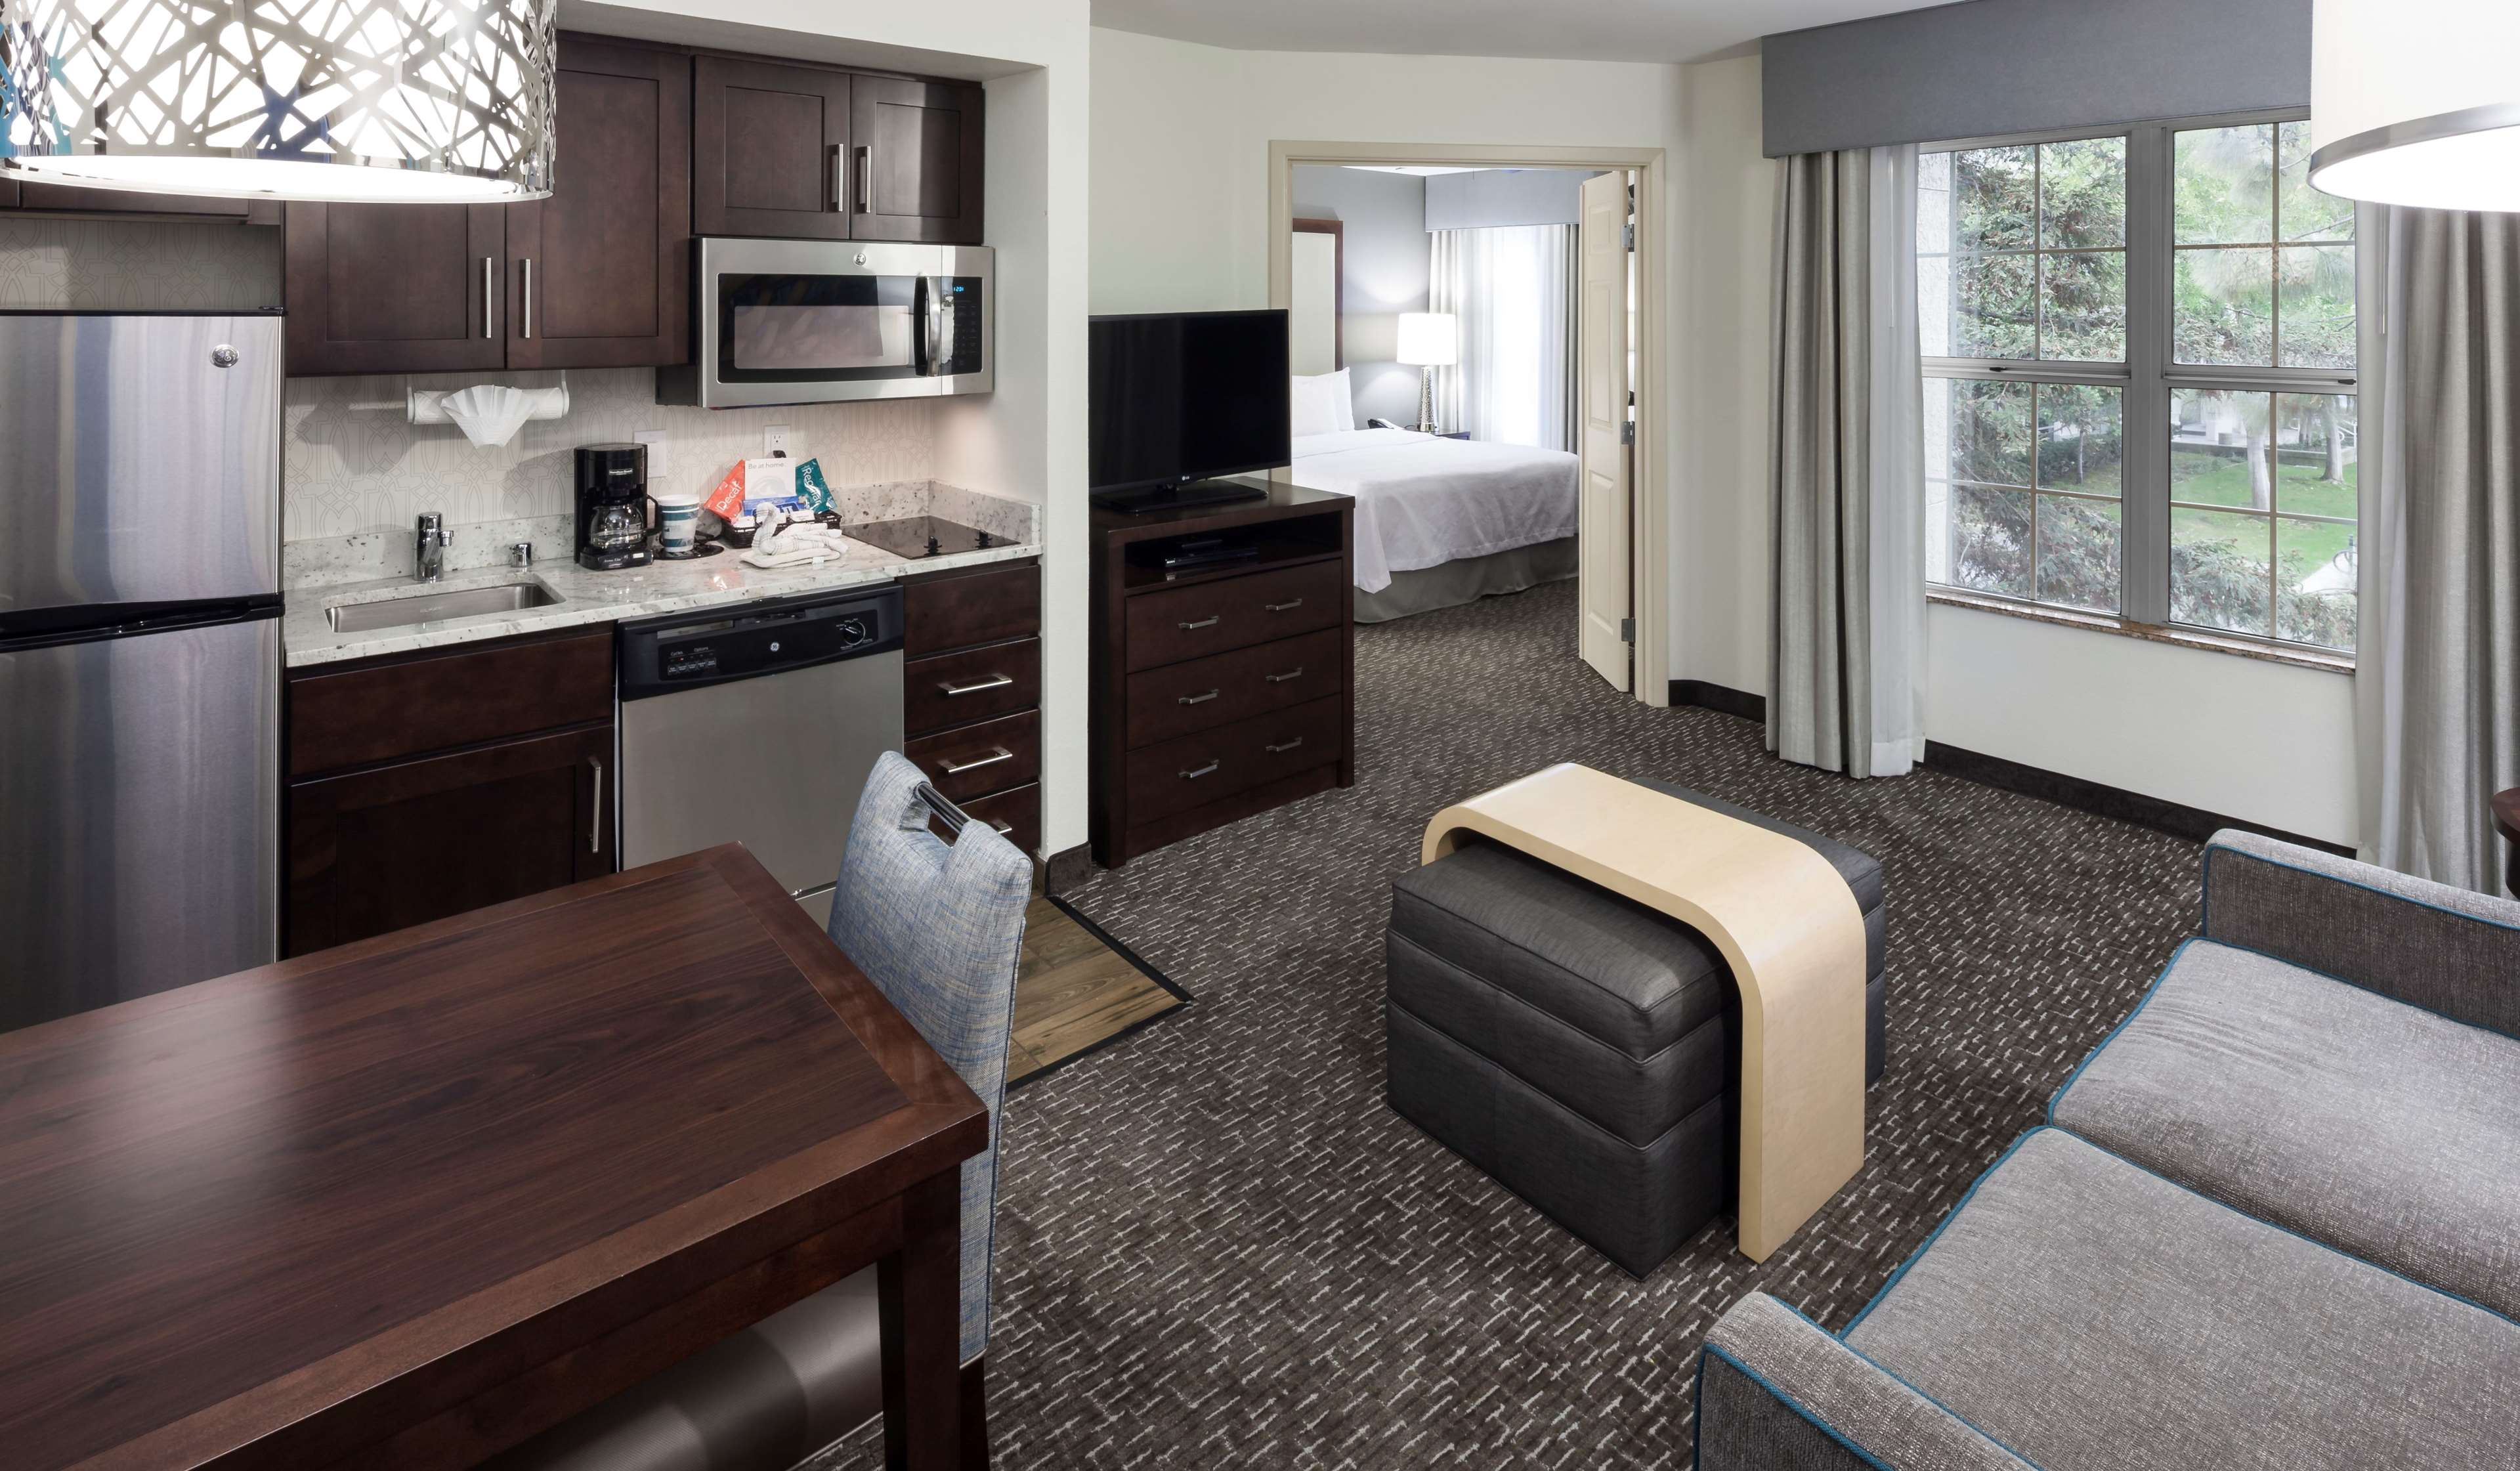 Homewood Suites by Hilton San Jose Airport-Silicon Valley image 14